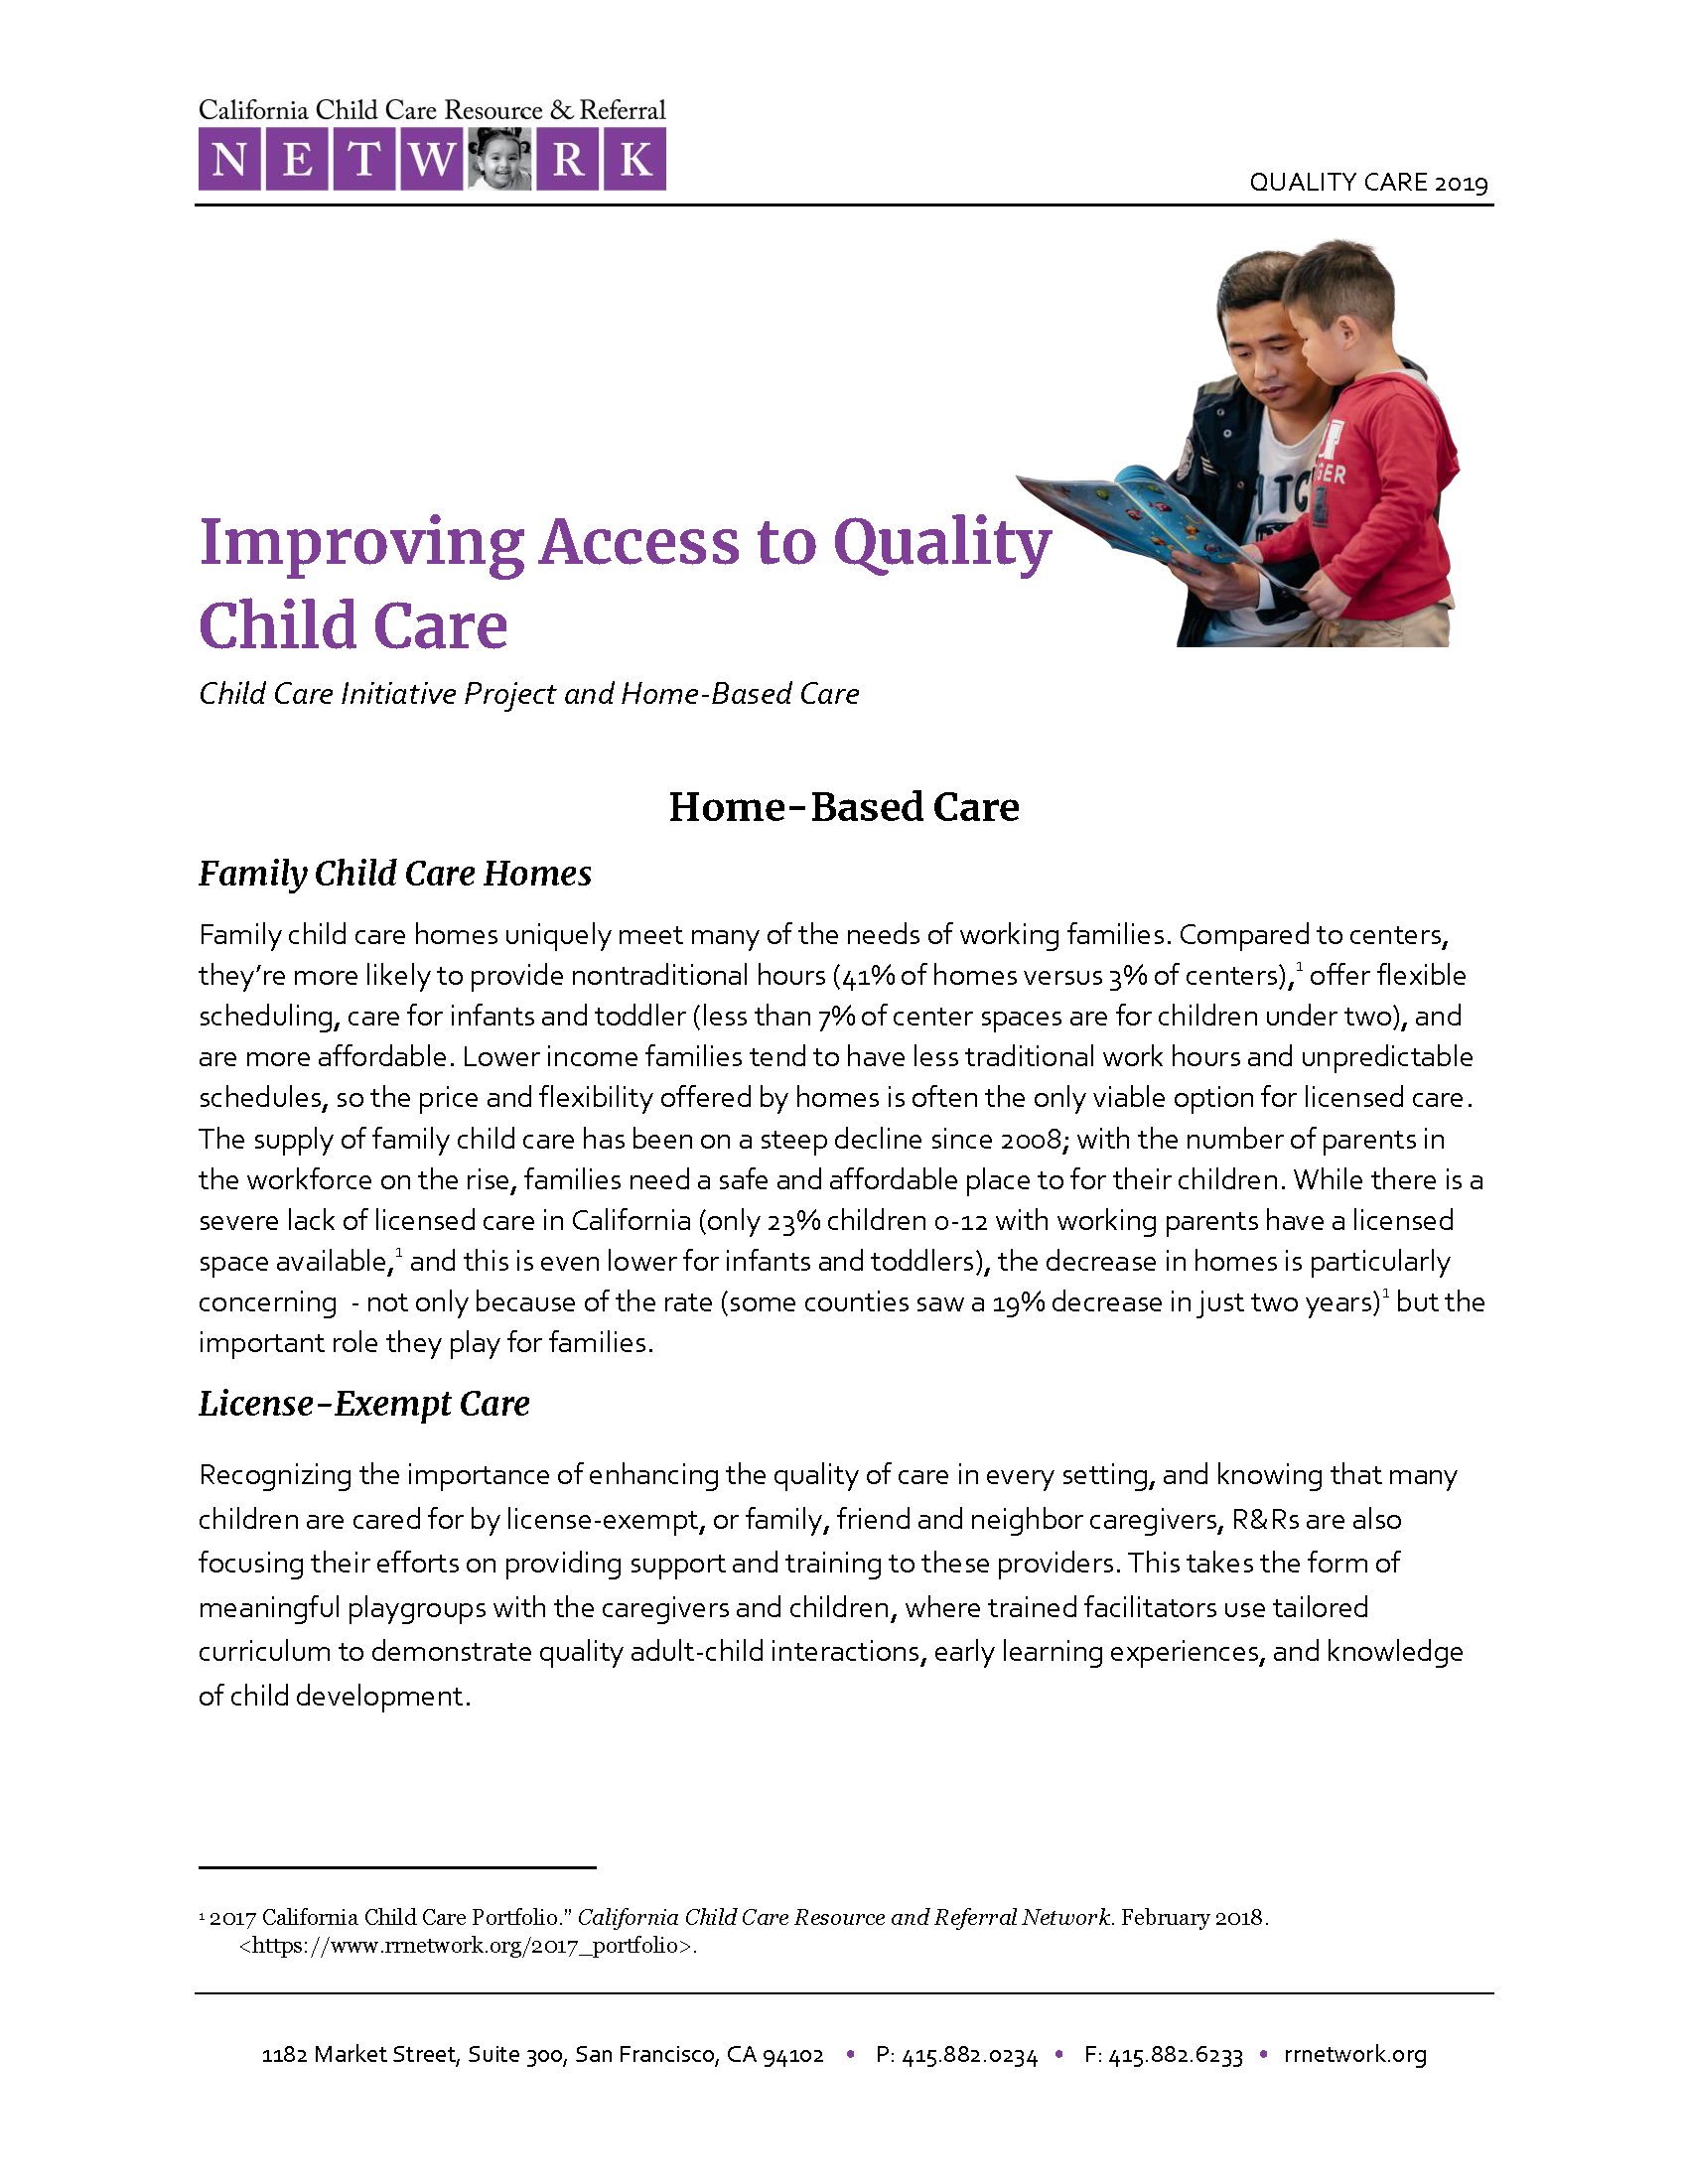 Improving Access to Quality Child Care